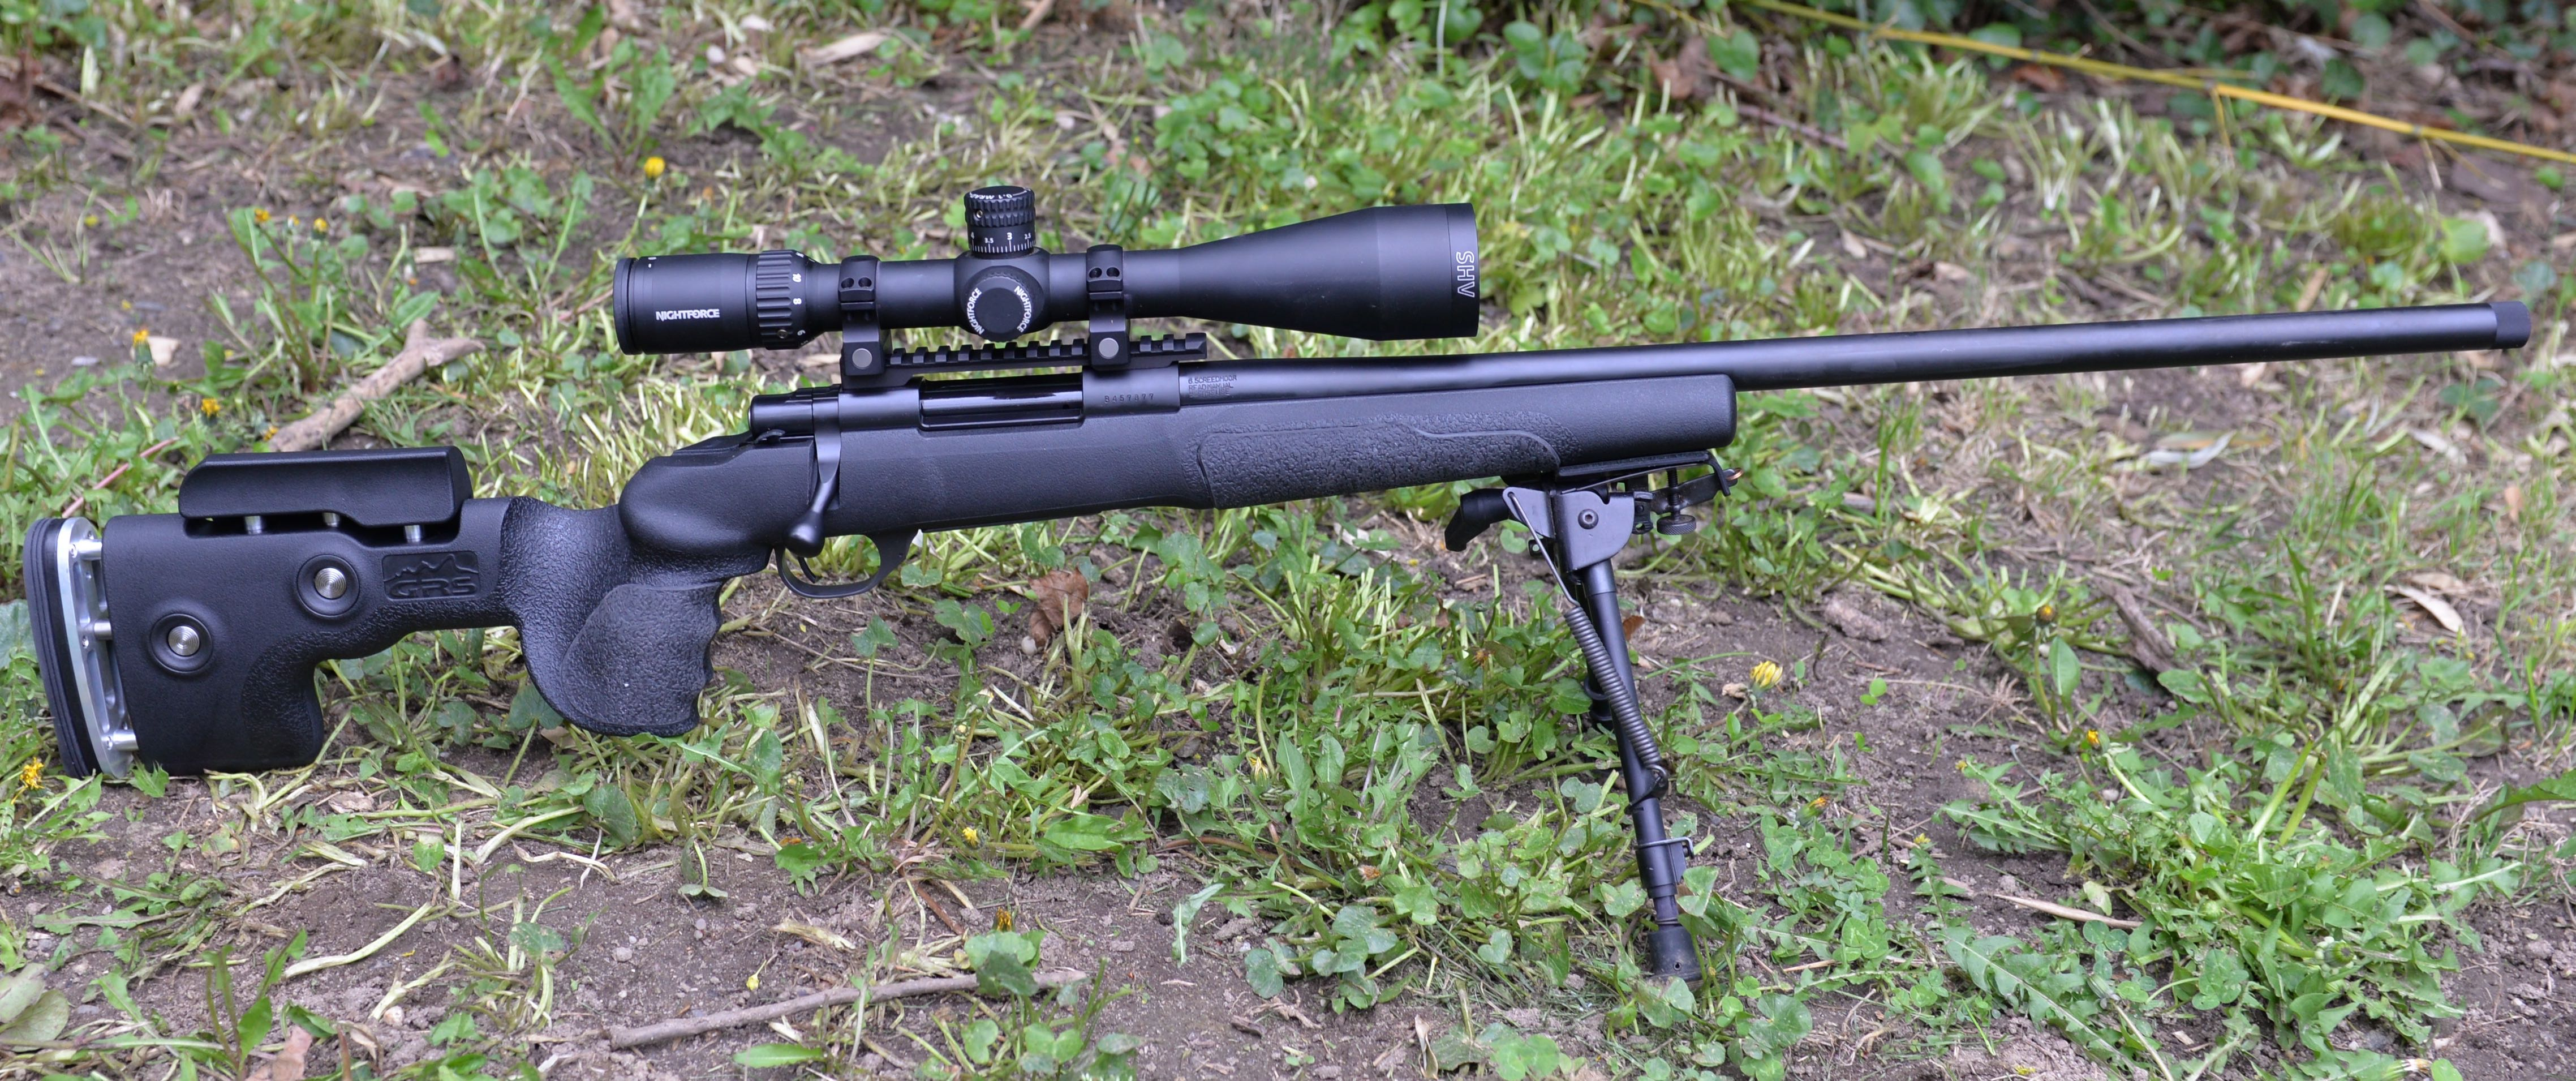 Howa GRS Berserk 6 5 Creedmoor Review – rifleshooter com